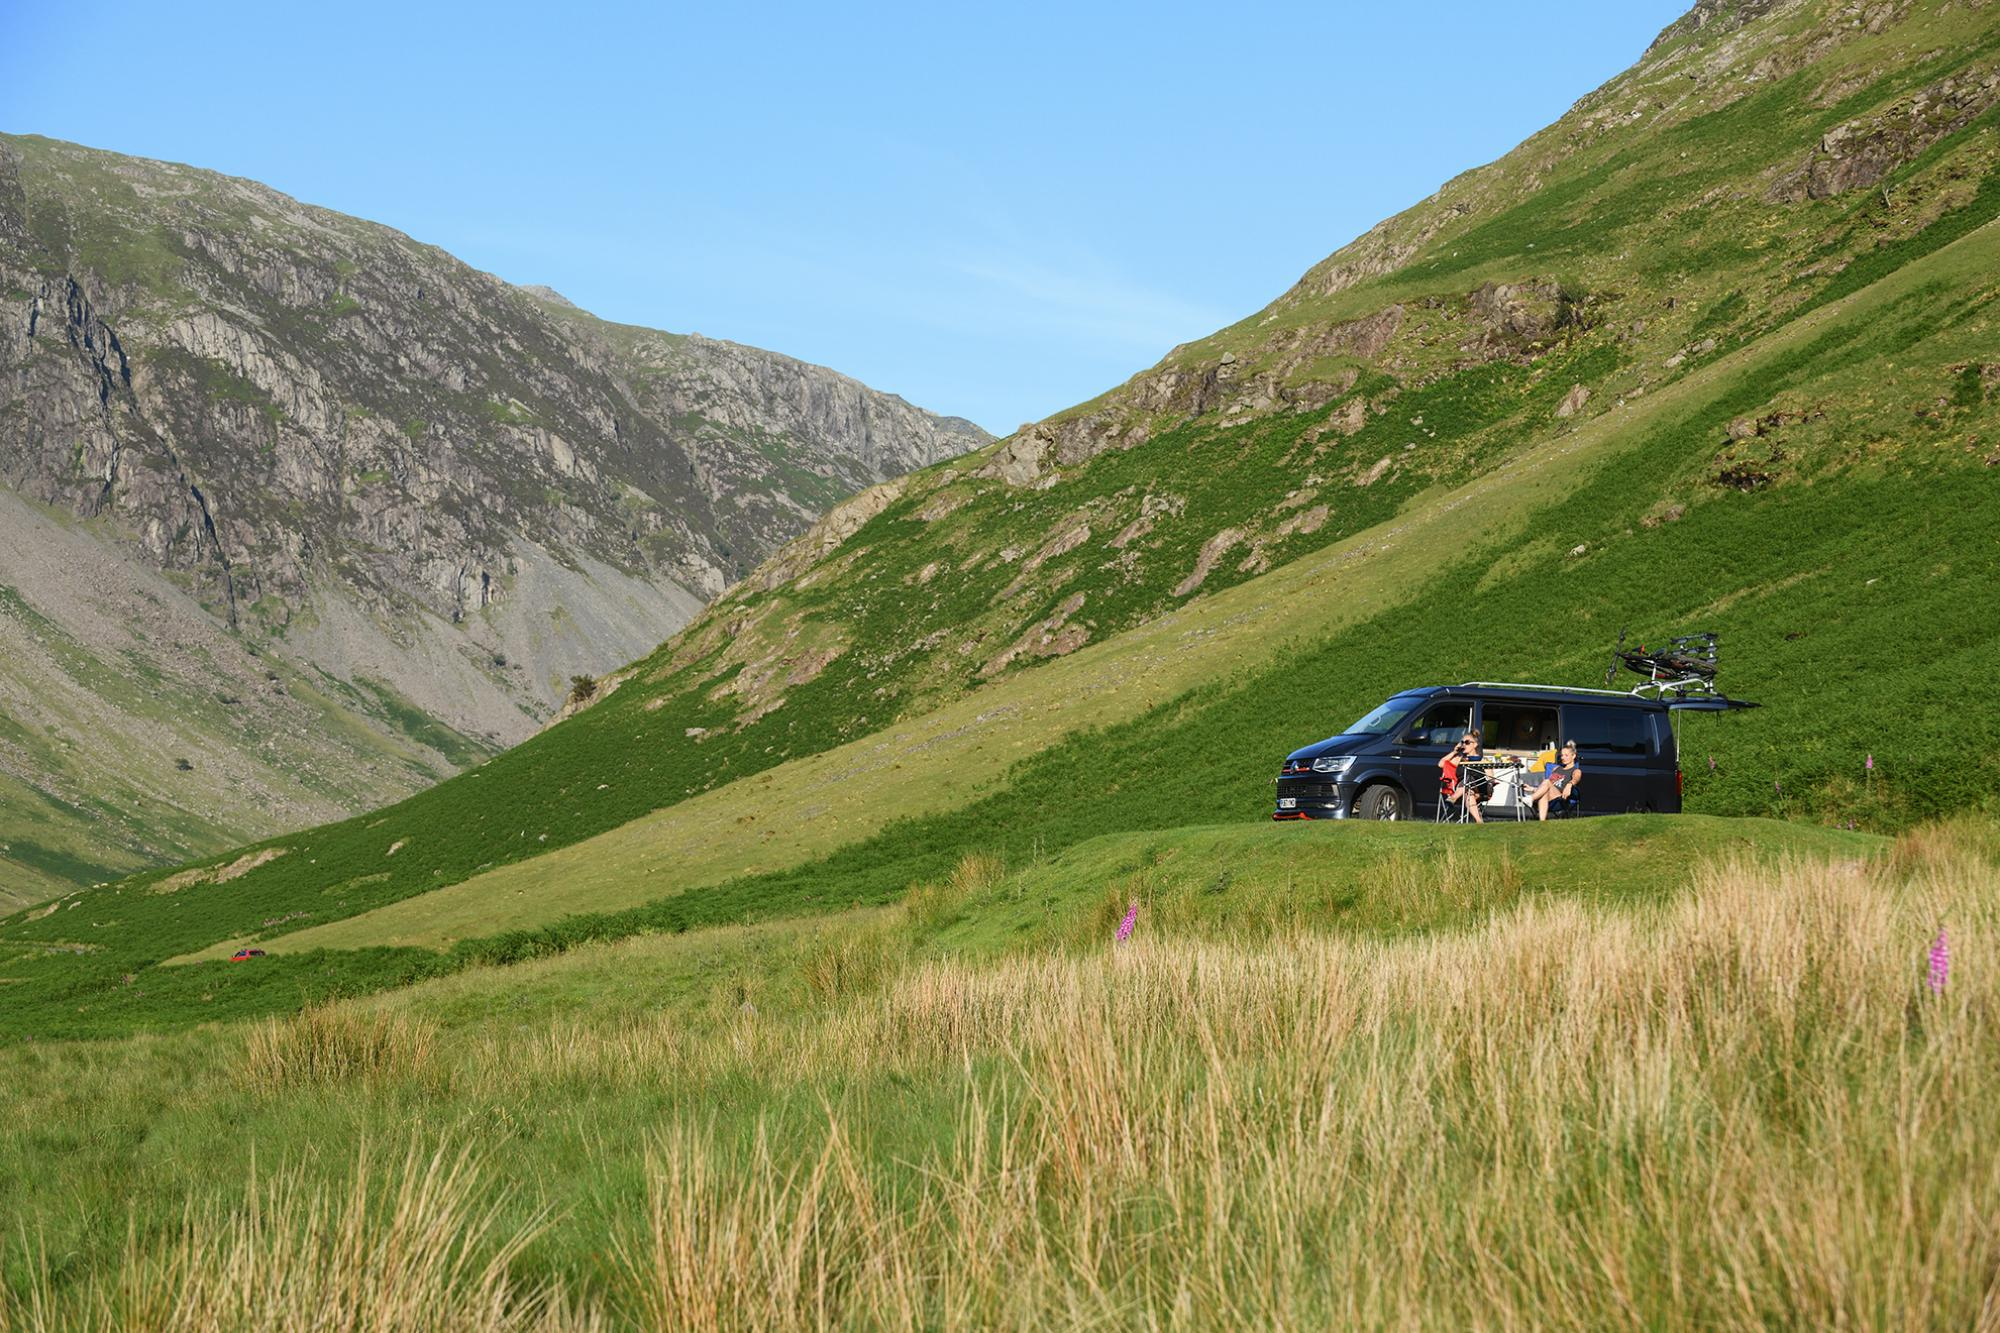 Campervan hire in the Lake District | Motorhome rental in the Lake District National Park